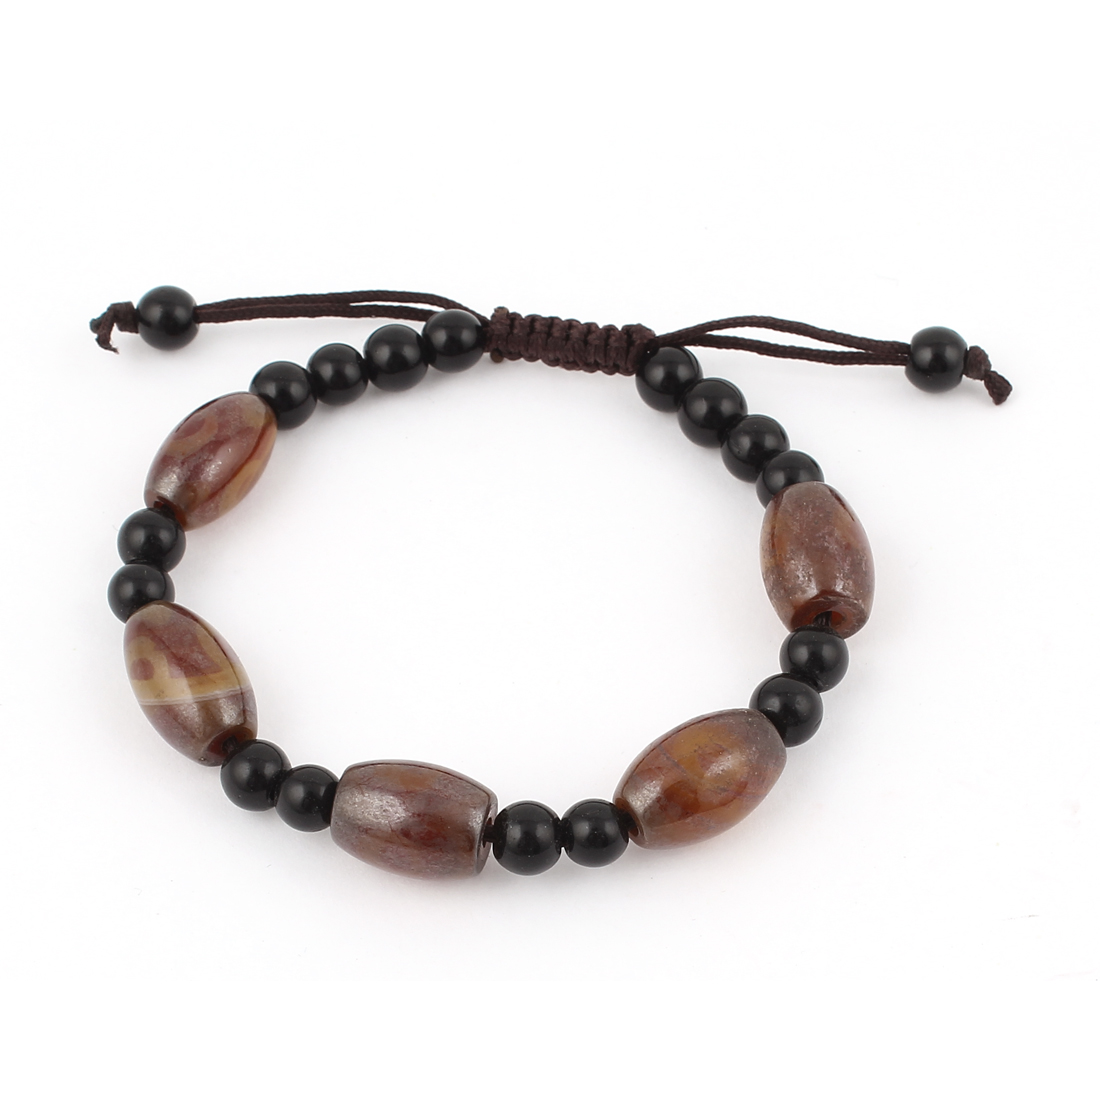 Unisex Tibetan DZI Beads Amulet Adjustable String Bangle Bracelet Black Brown